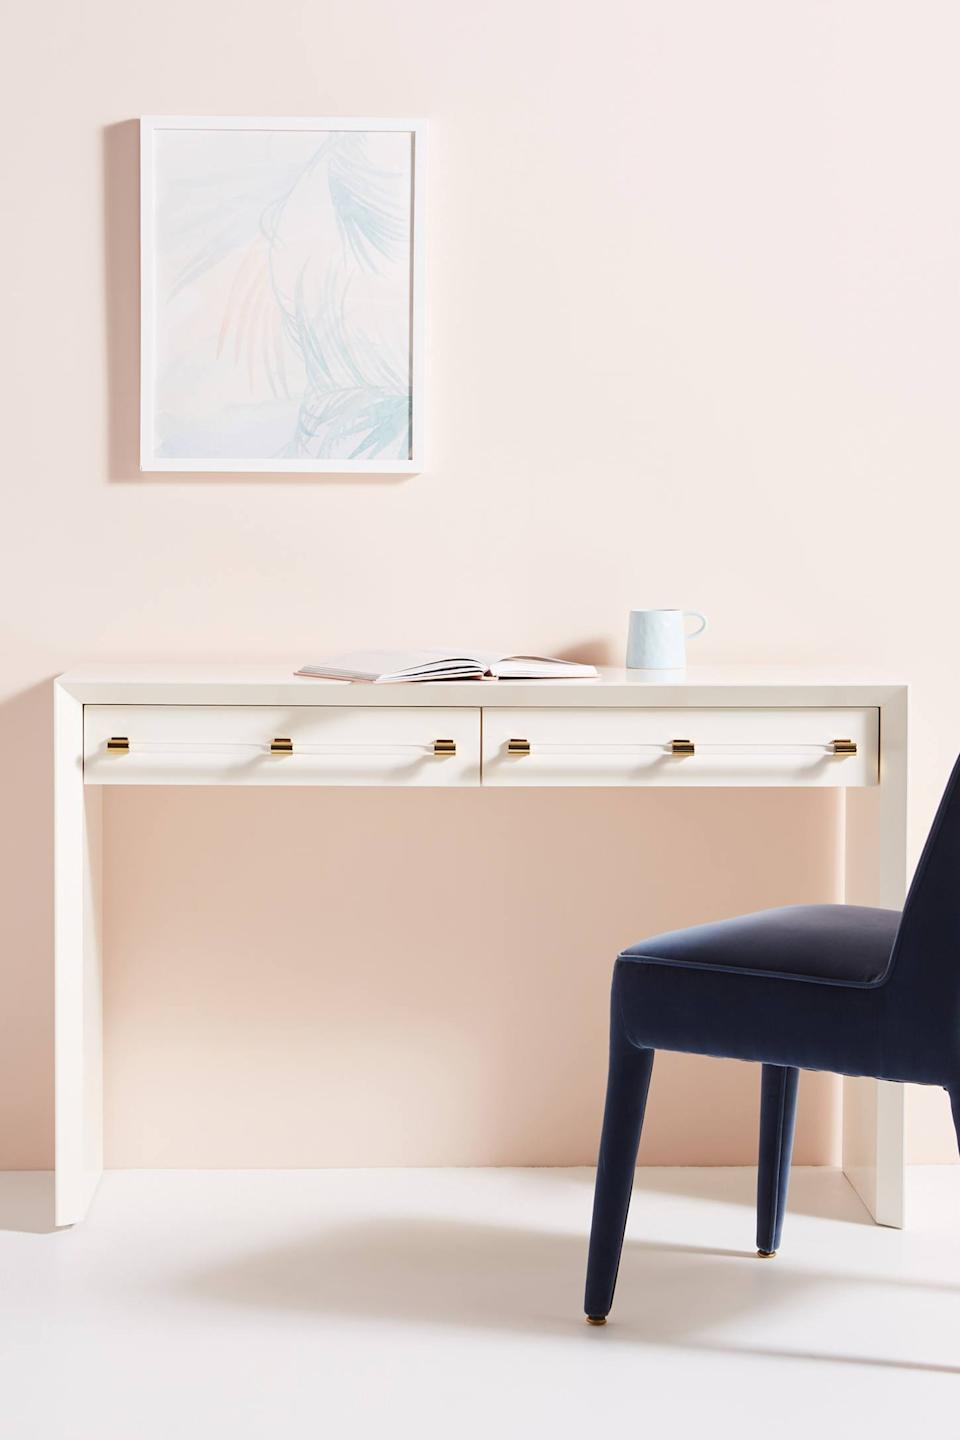 """<h3>Anthropologie Merriton Desk</h3><br>It doesn't get much sleeker than this chamfered-edge wooden desk with an unencumbered frame, streamlined storage drawers, and gleaming brass accents.<br><br><strong>Anthropologie</strong> Merriton Desk, $, available at <a href=""""https://go.skimresources.com/?id=30283X879131&url=https%3A%2F%2Fwww.anthropologie.com%2Fshop%2Fmerriton-desk"""" rel=""""nofollow noopener"""" target=""""_blank"""" data-ylk=""""slk:Anthropologie"""" class=""""link rapid-noclick-resp"""">Anthropologie</a>"""